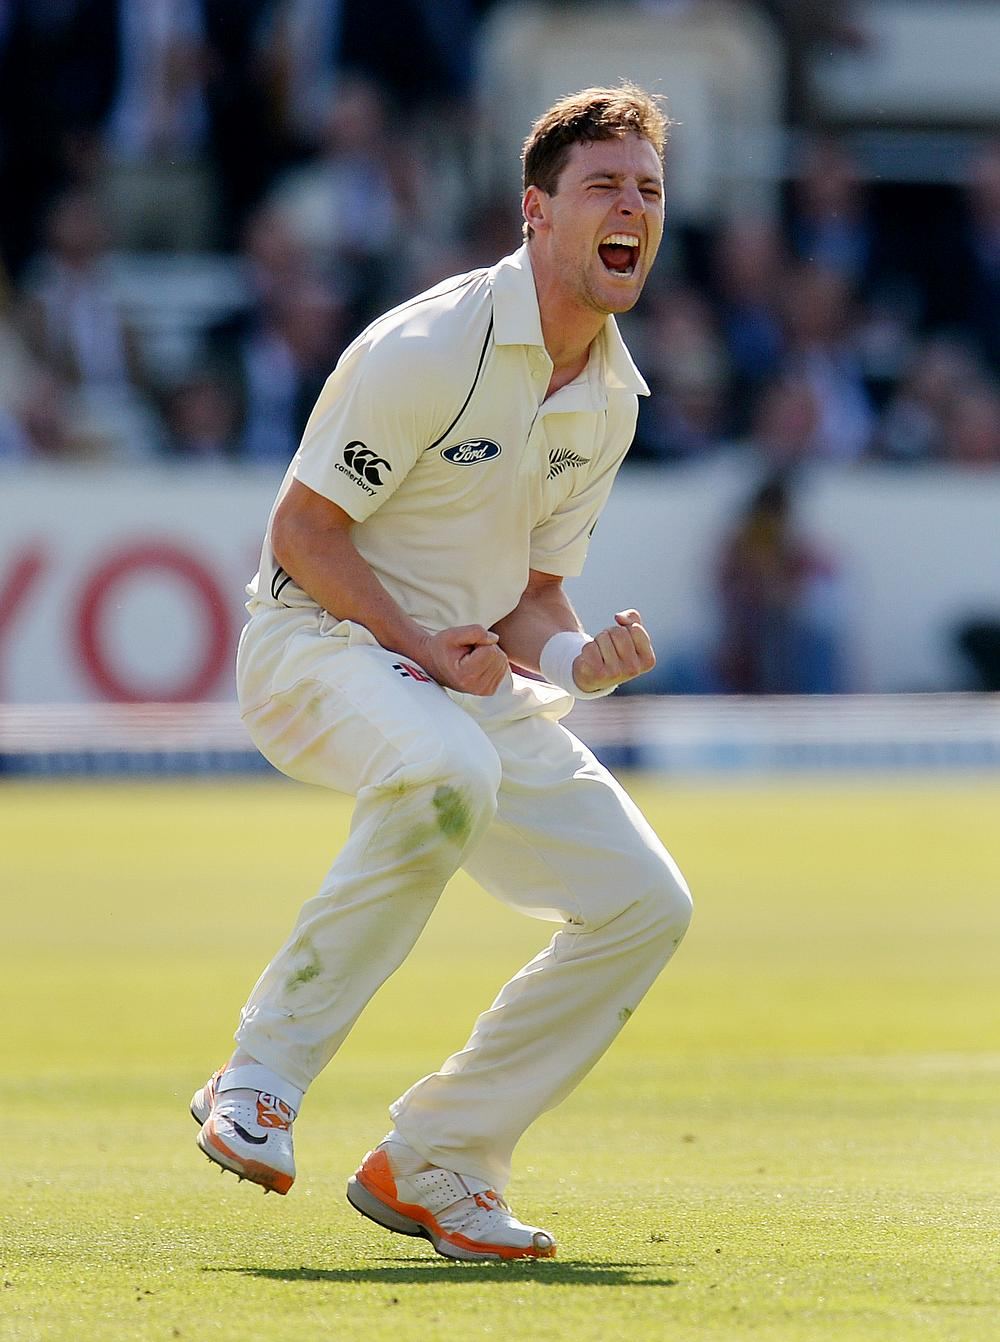 Matt Henry celebrates the wicket of Joe Root in the First Test against England at Lord's.